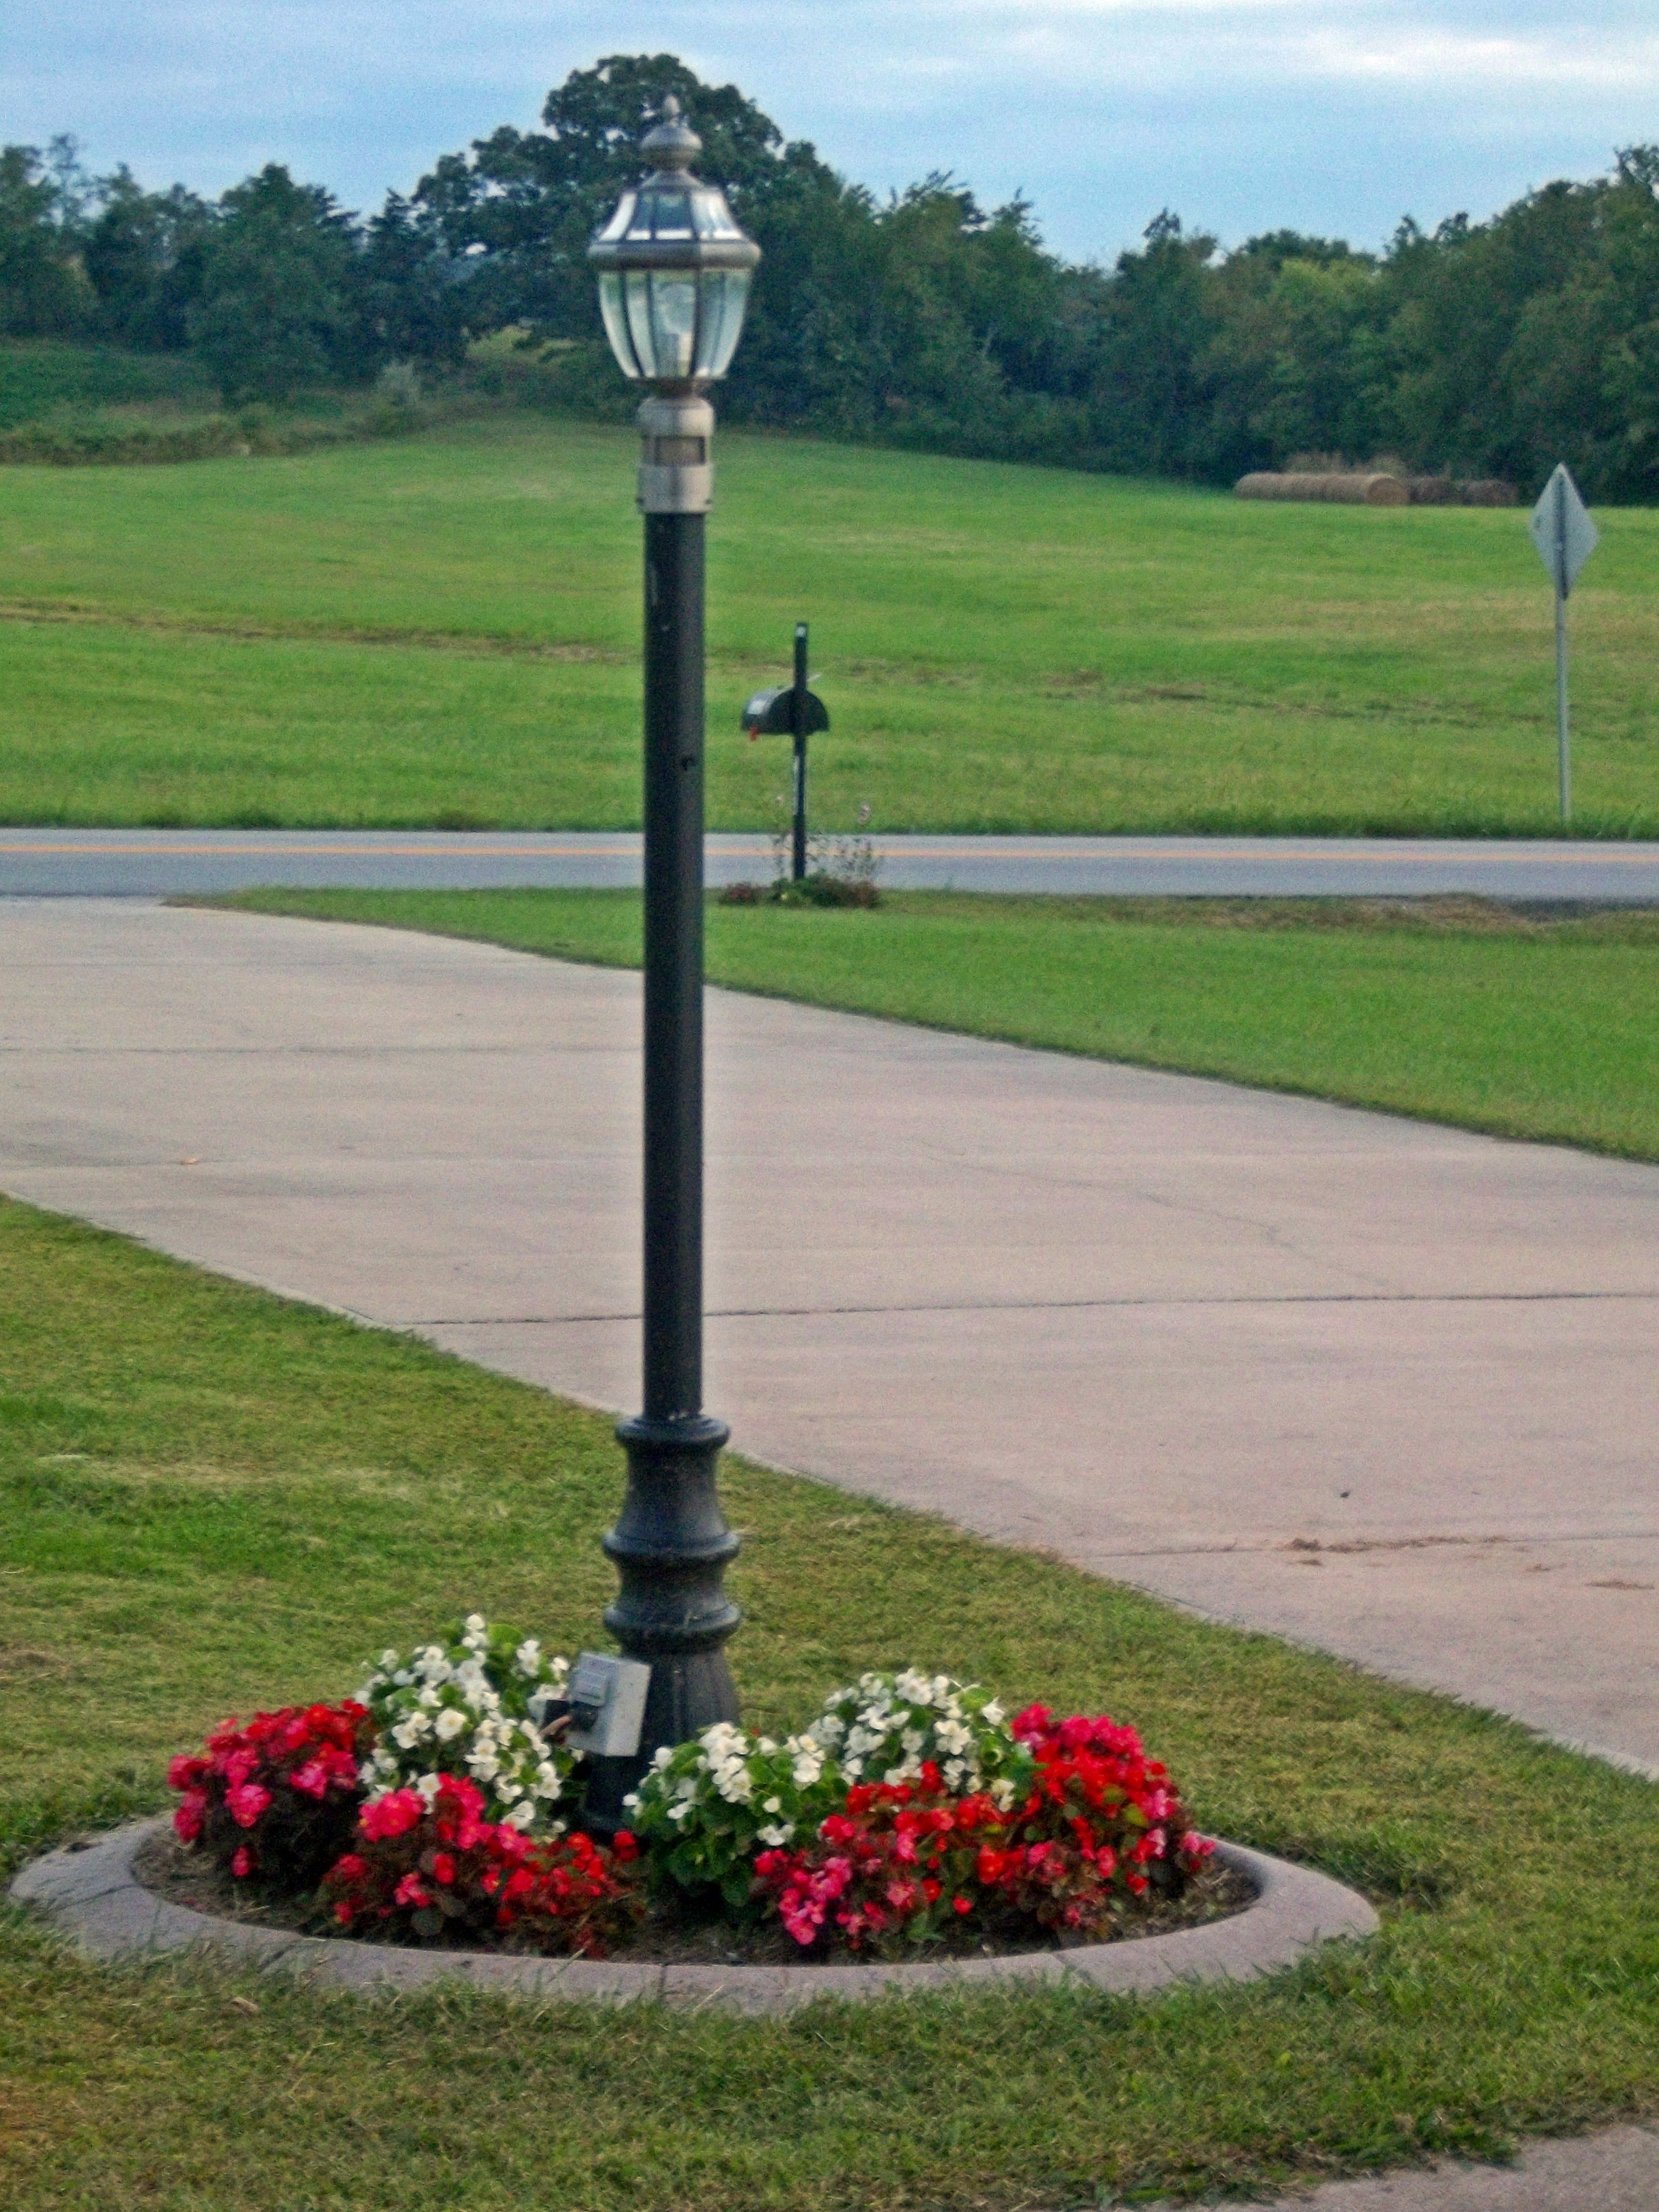 Outdoor lamp post ideas - The Lamp Post Photo By Joy Fussell